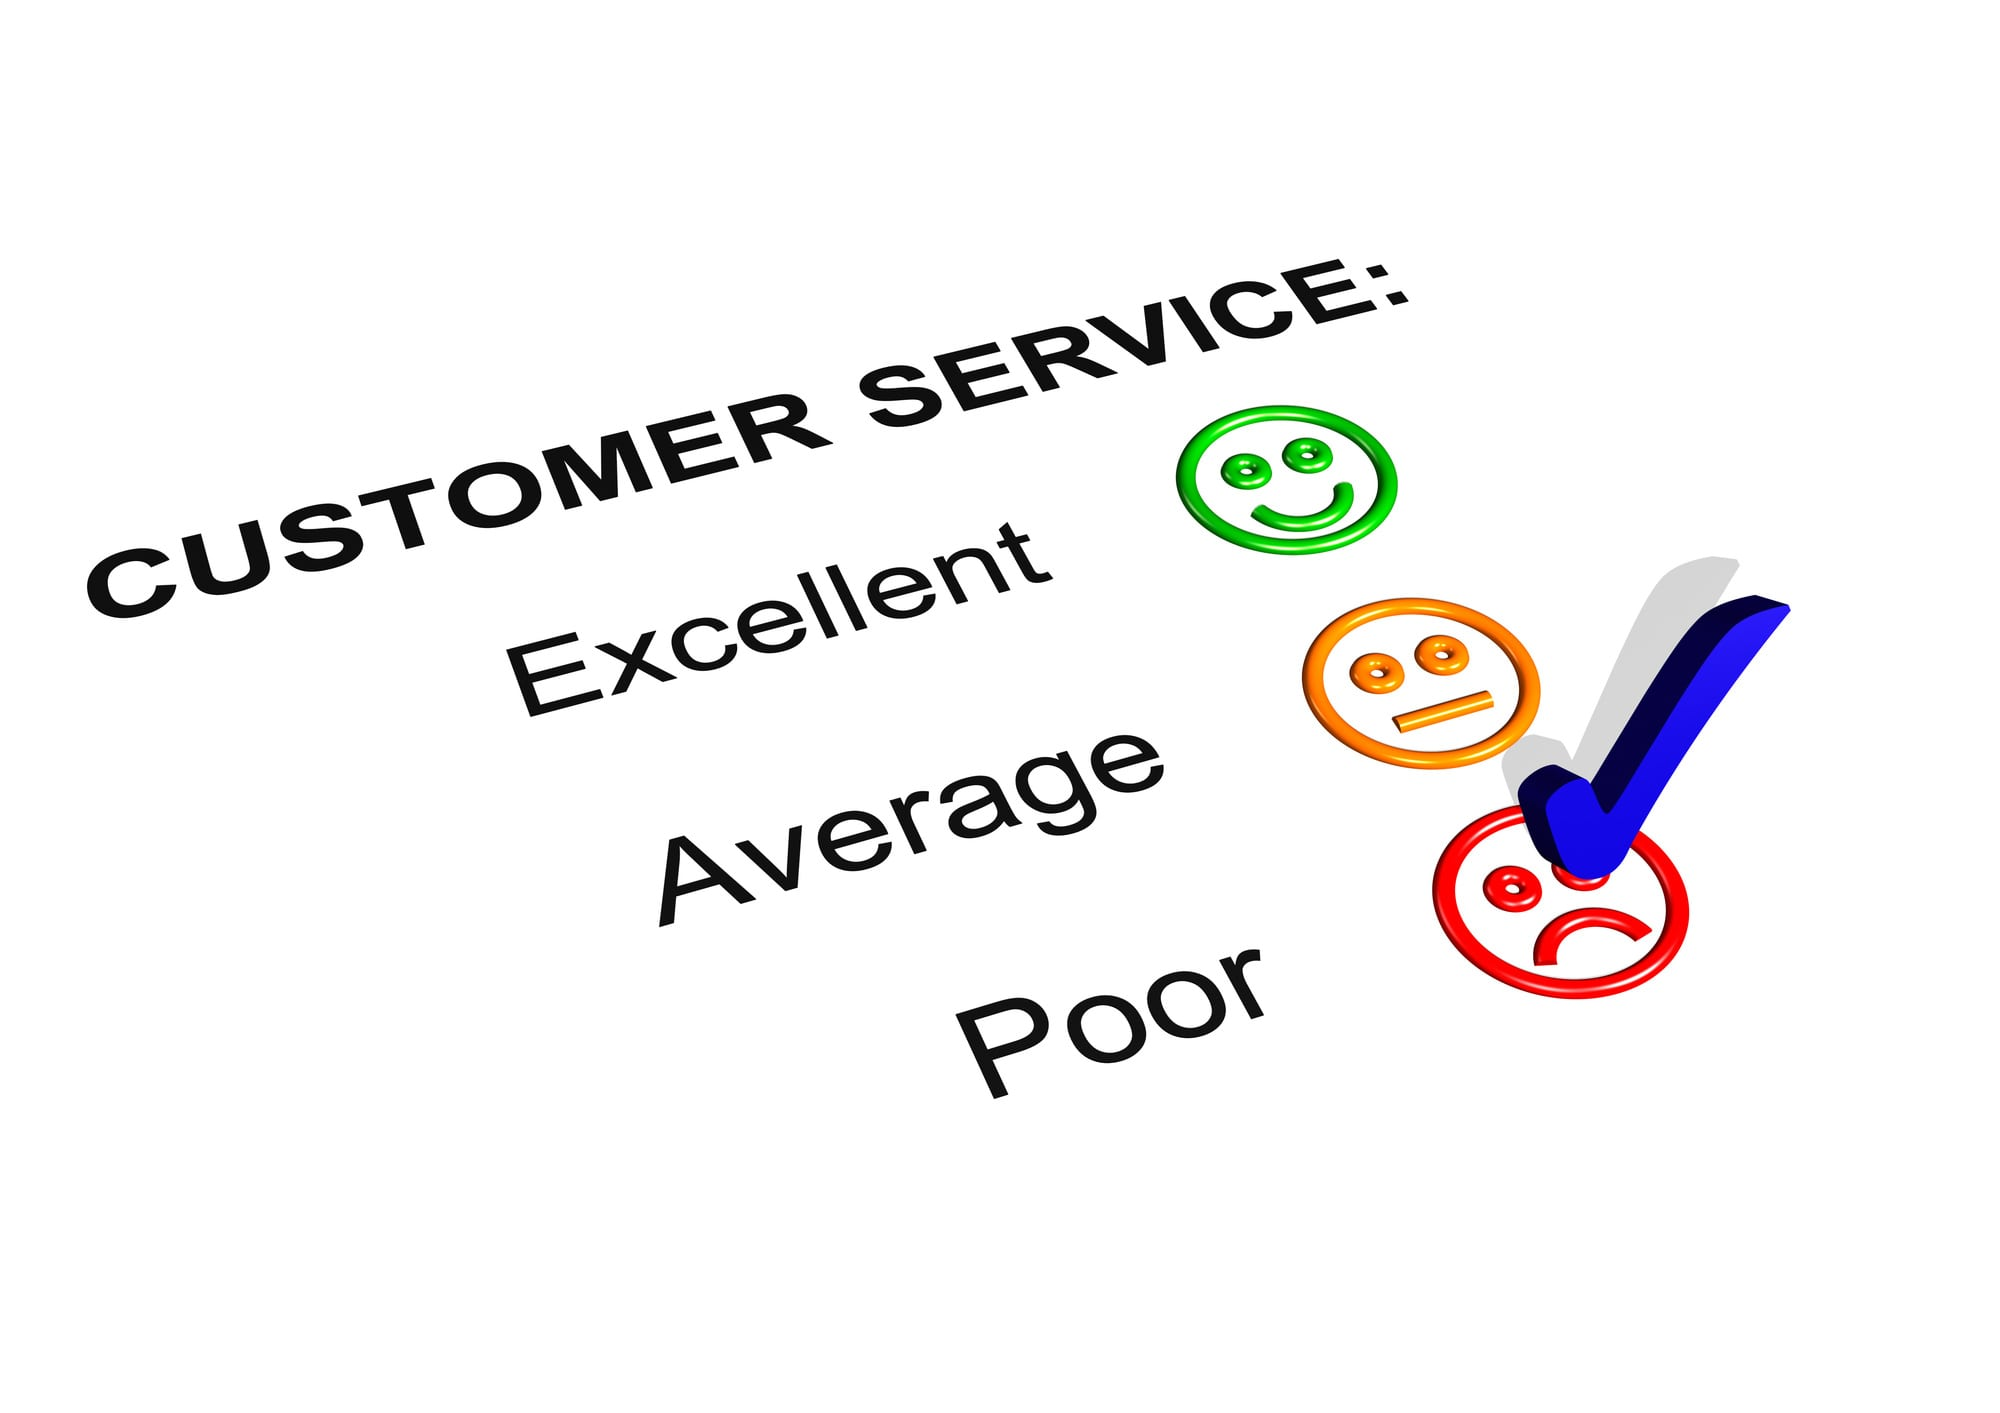 Poor customer service checked off on customer satisfaction survey